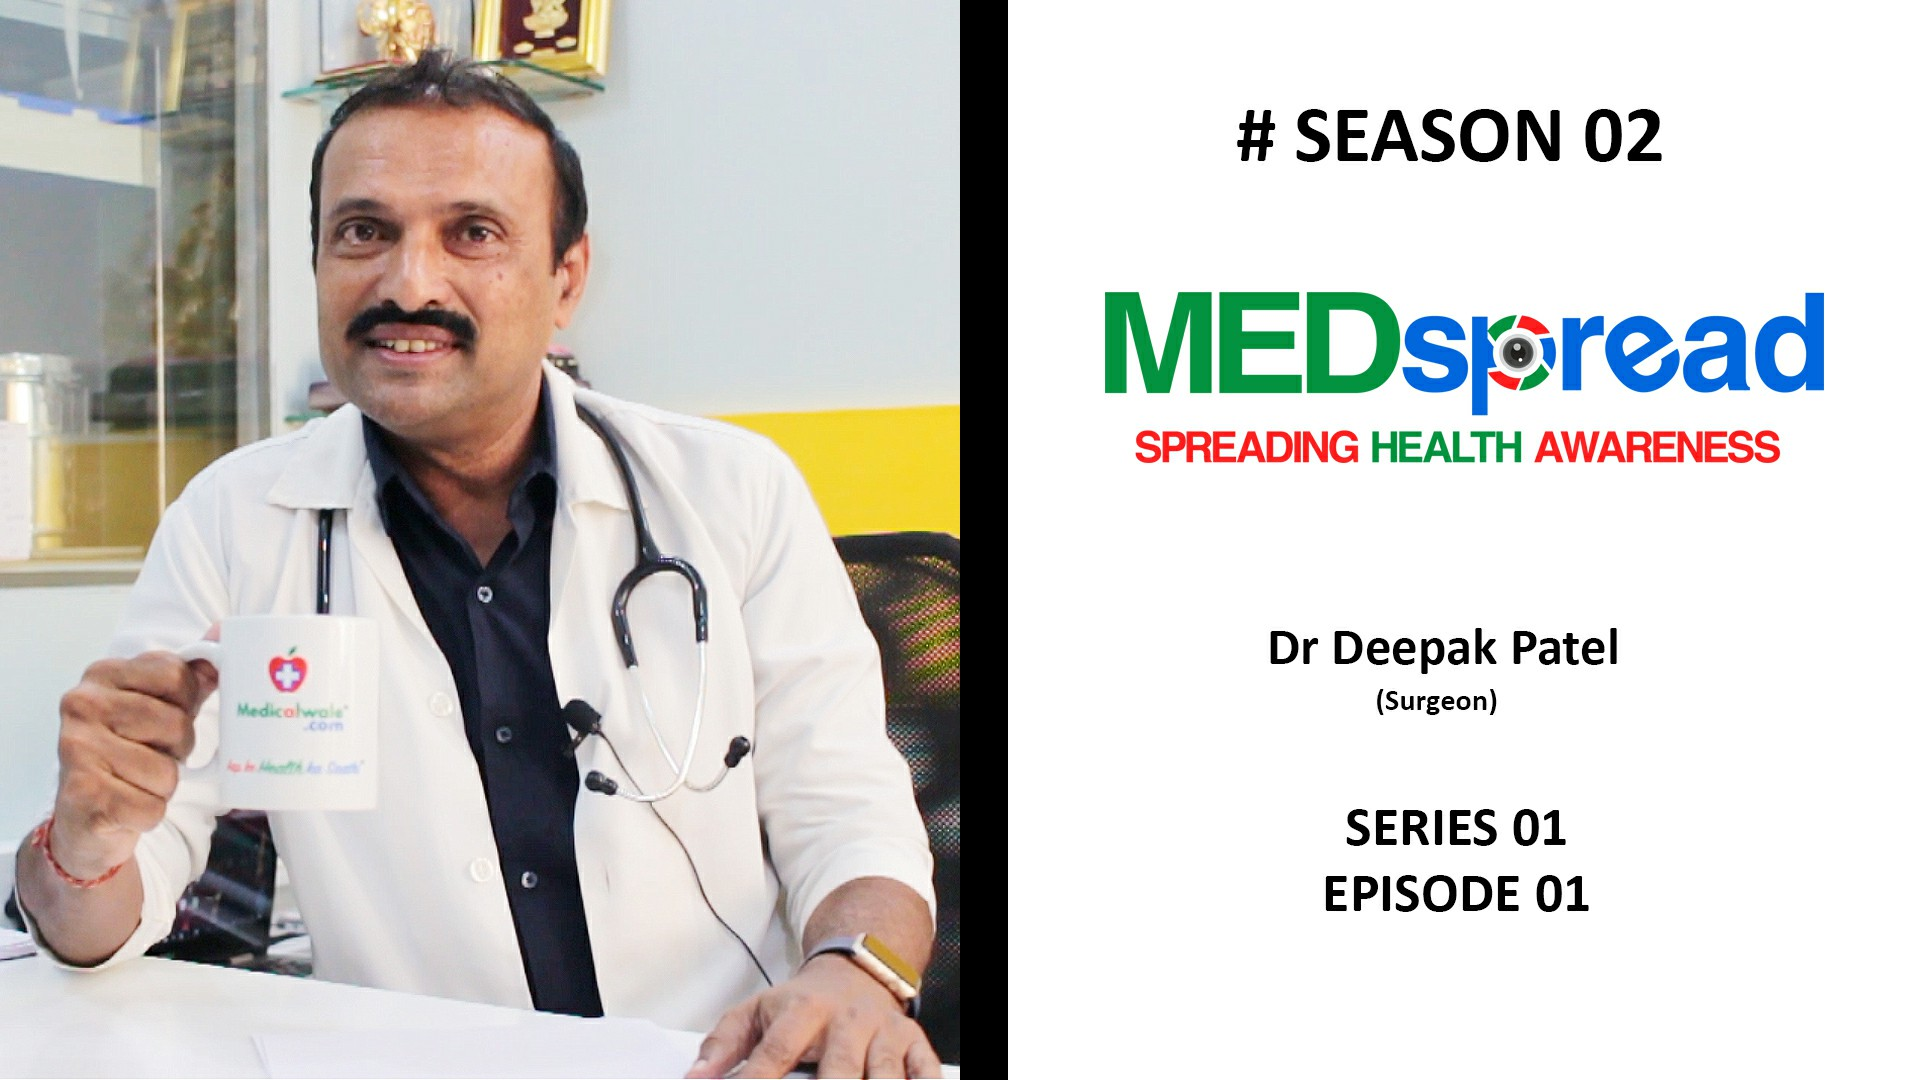 MedSpread Season 2 series 01 Ep 01 | Dr Deepak Patel (Surgeon)